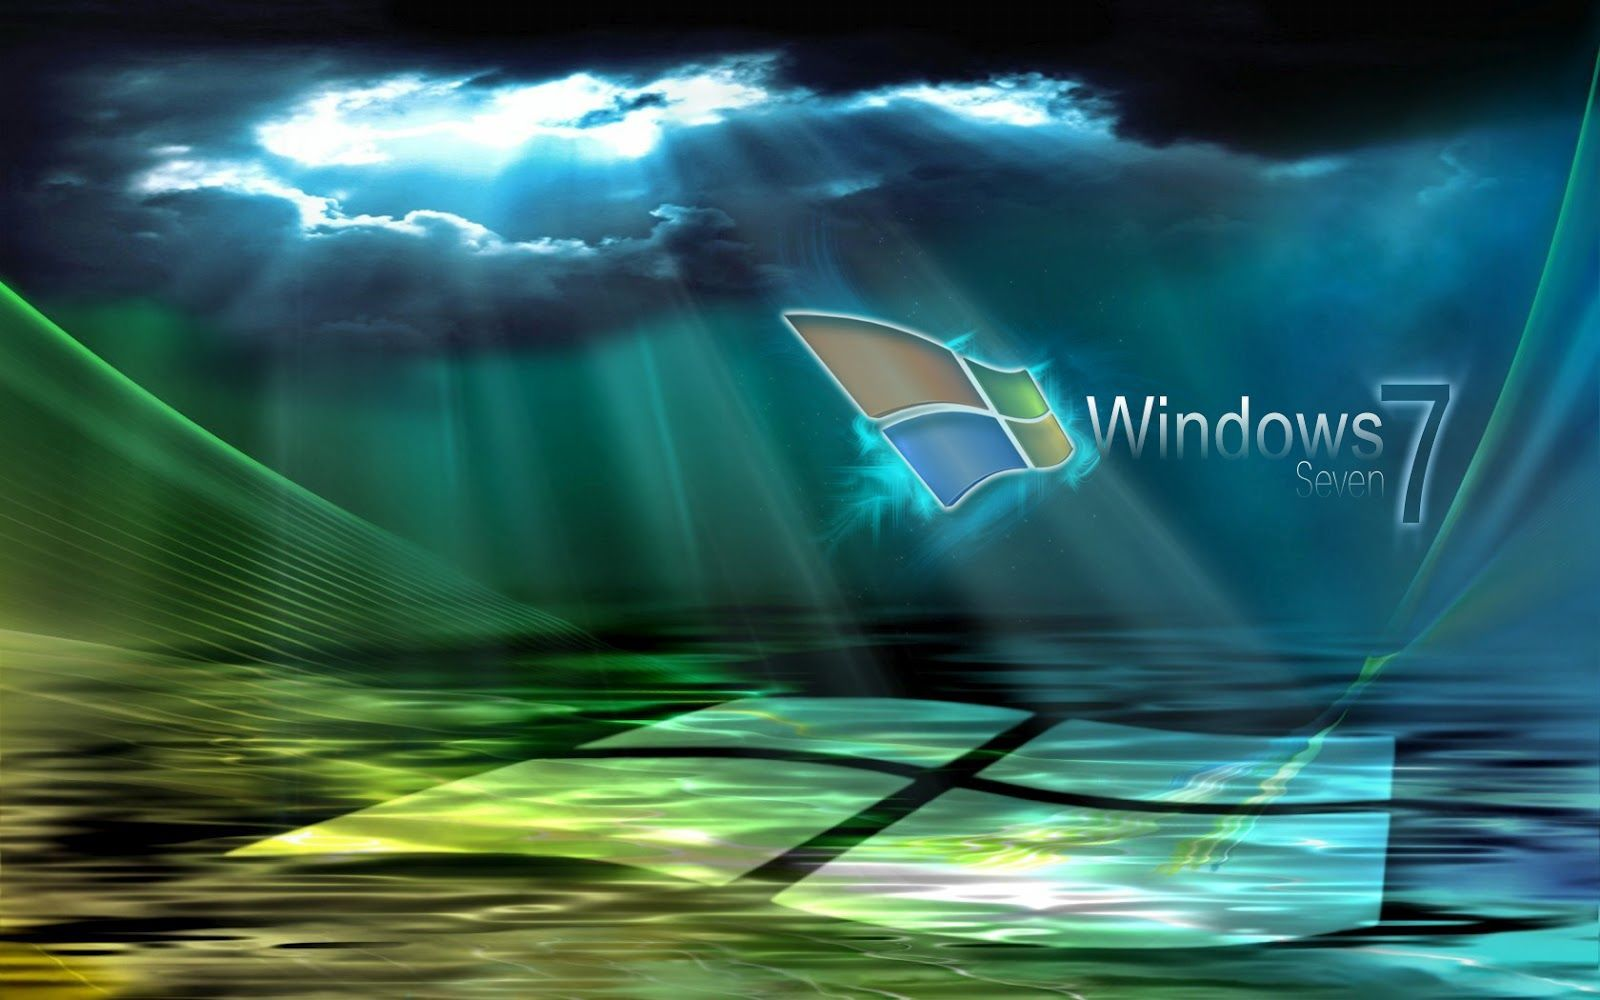 Download 3D Wallpaper Pc Windows 7 Gallery